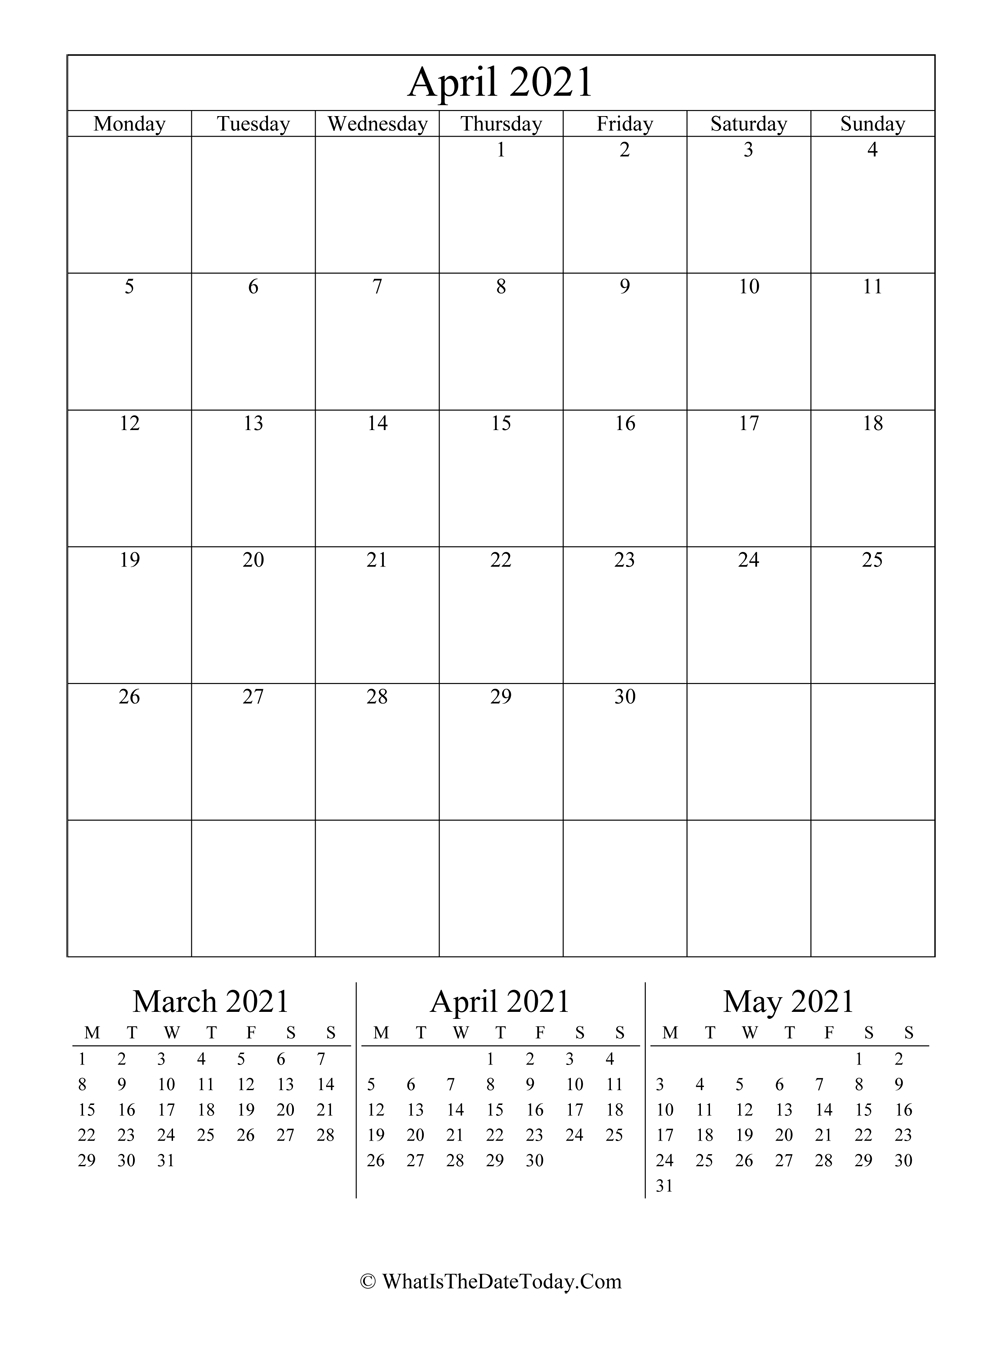 April 2021 Editable Calendar (Vertical Layout) | Whatisthedatetoday within 2021 Excel Calendars Verticle Photo